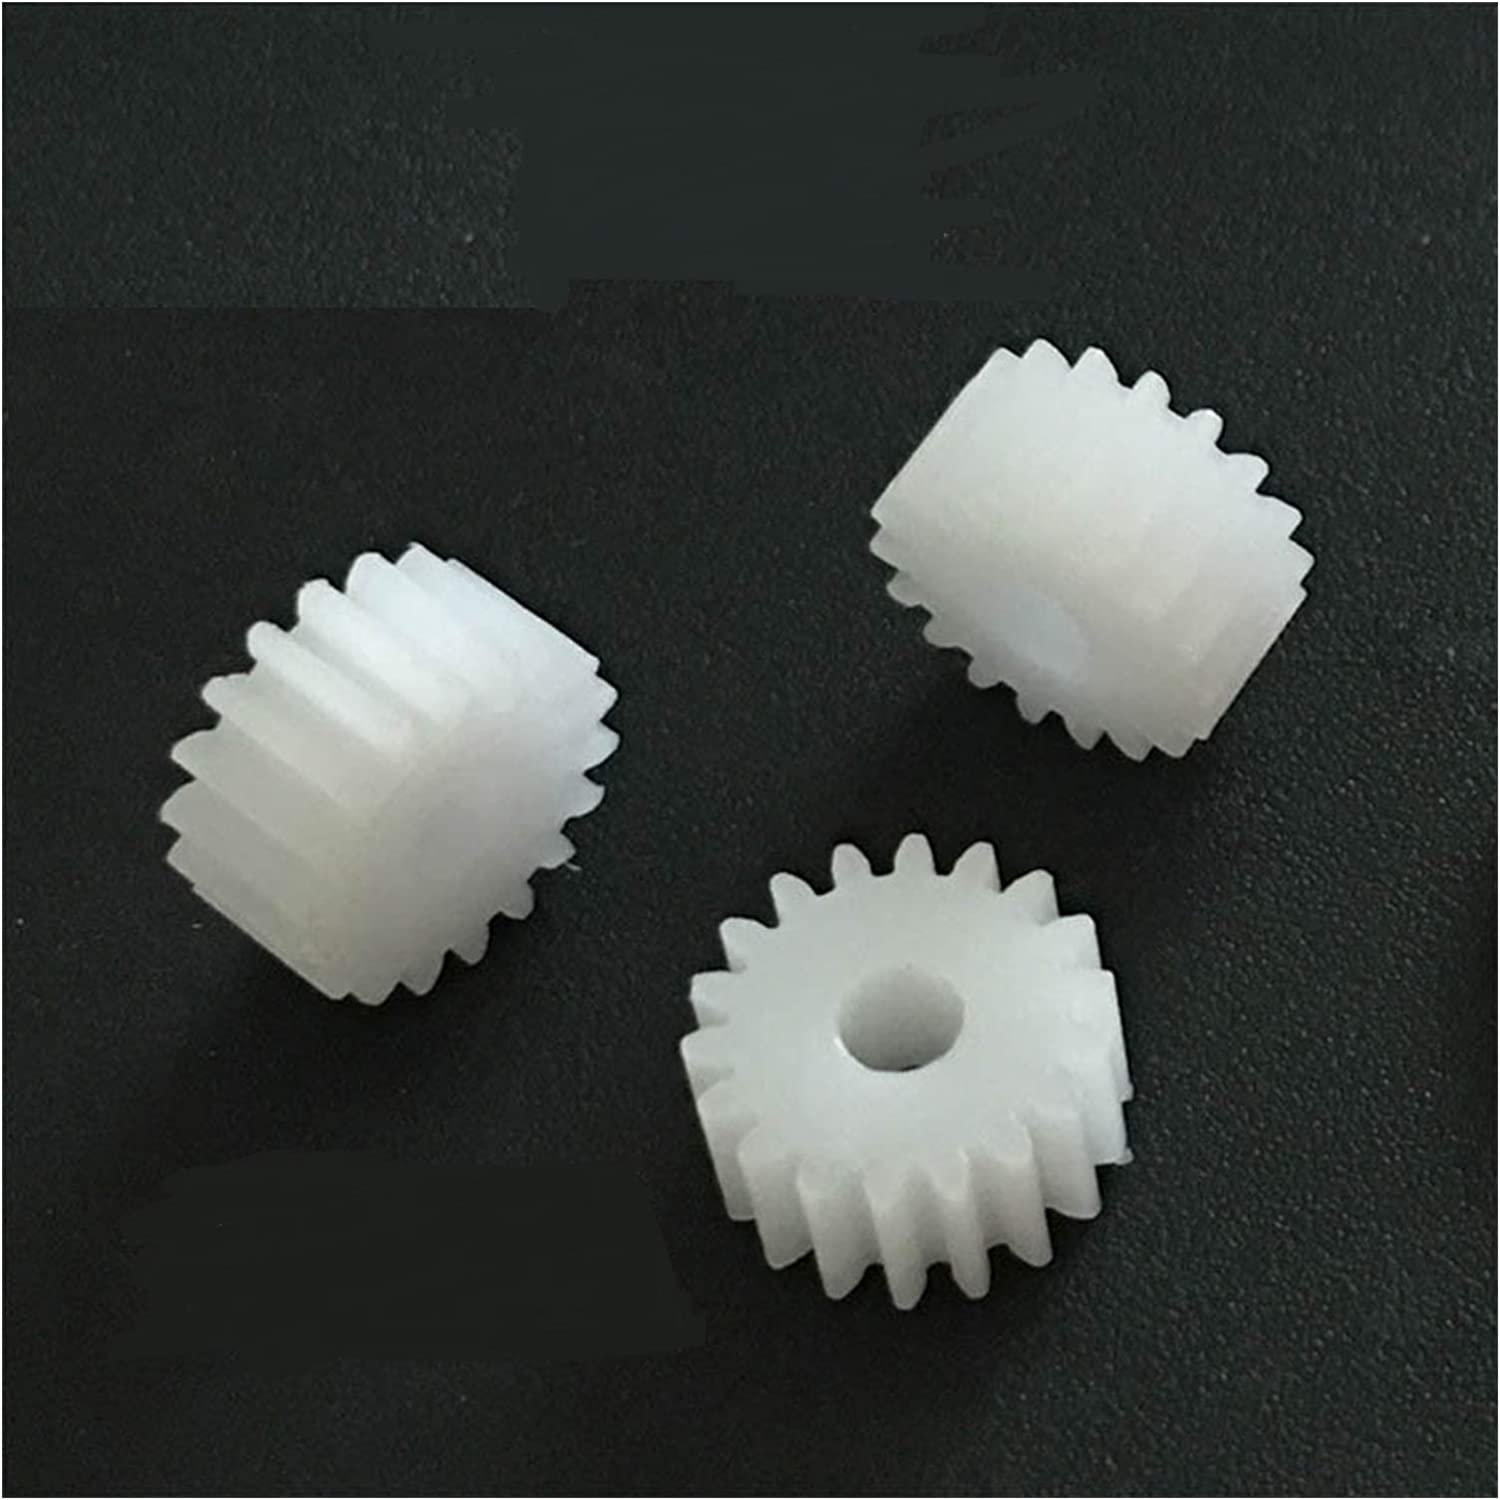 TONGCHAO Tchaogr 183A 0.5M Gears 18 Pl 3mm Tight Pom Max Large-scale sale 42% OFF Teeth Shaft